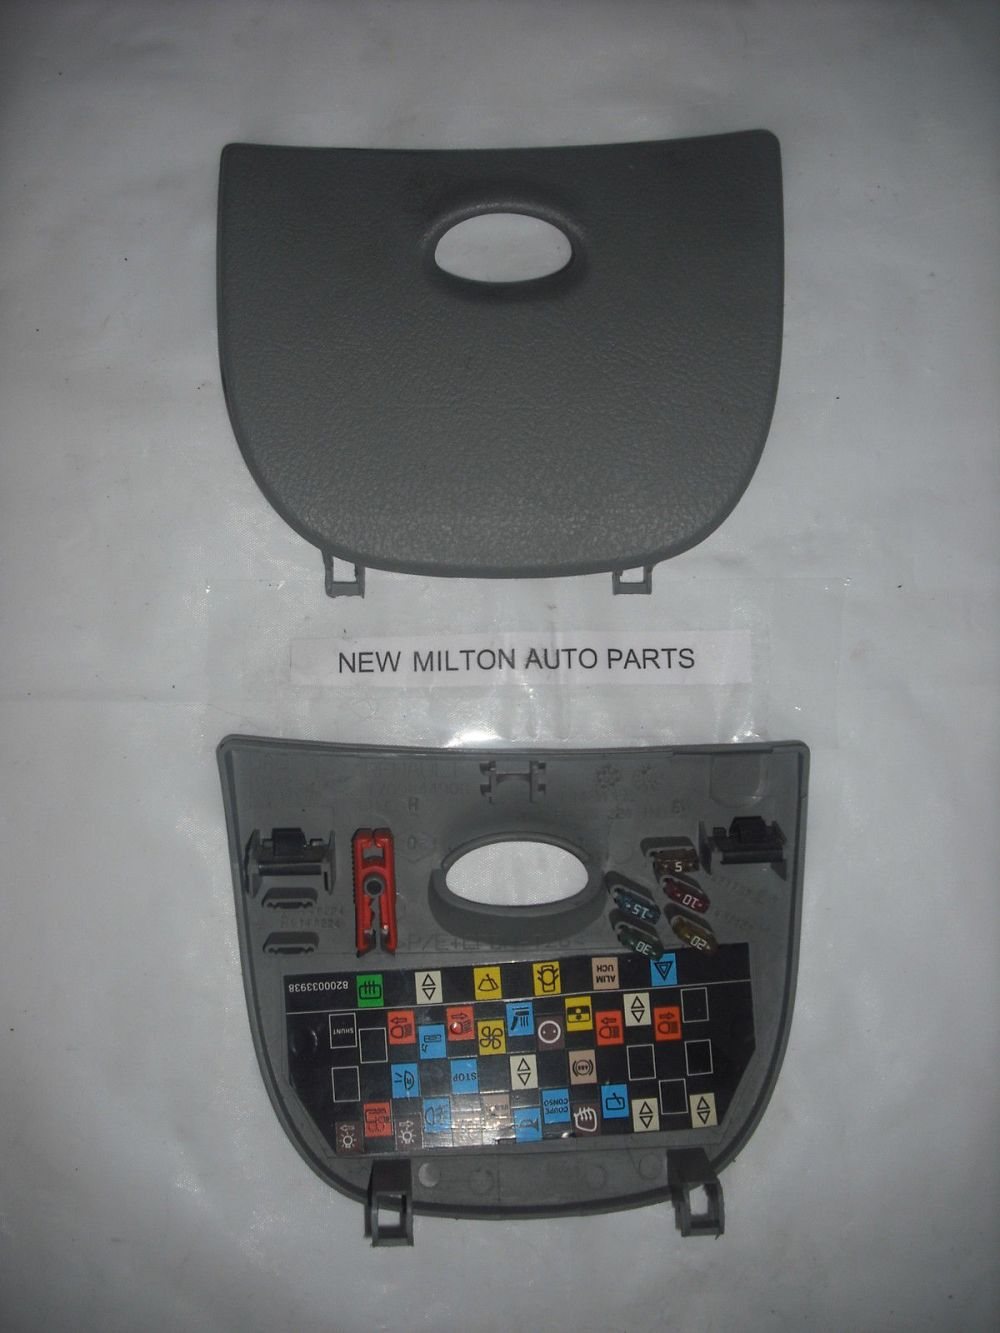 medium resolution of 1996 2003 renault scenic mk1 dash fuse box cover trim panel door light grey